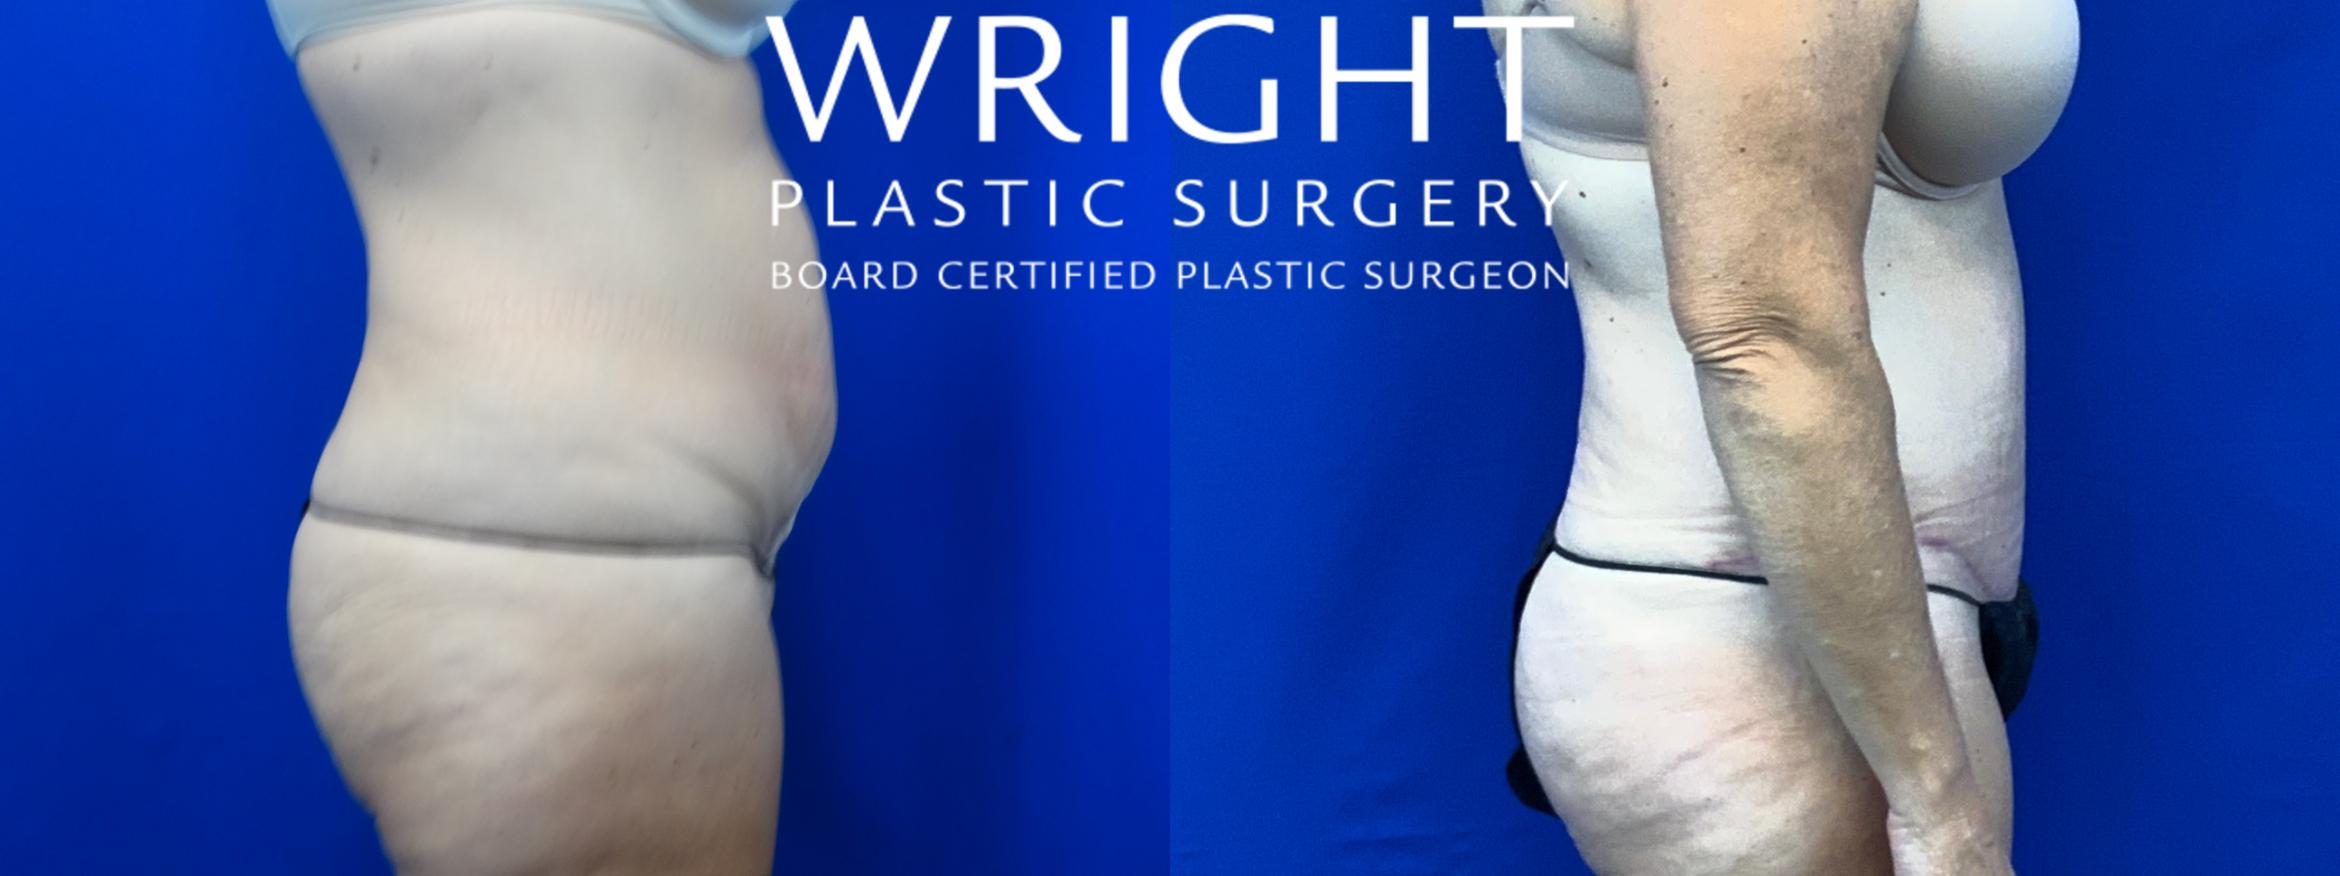 Tummy Tuck Case 29 Before & After Right Side | Little Rock, Arkansas | Dr. Wright Plastic Surgery